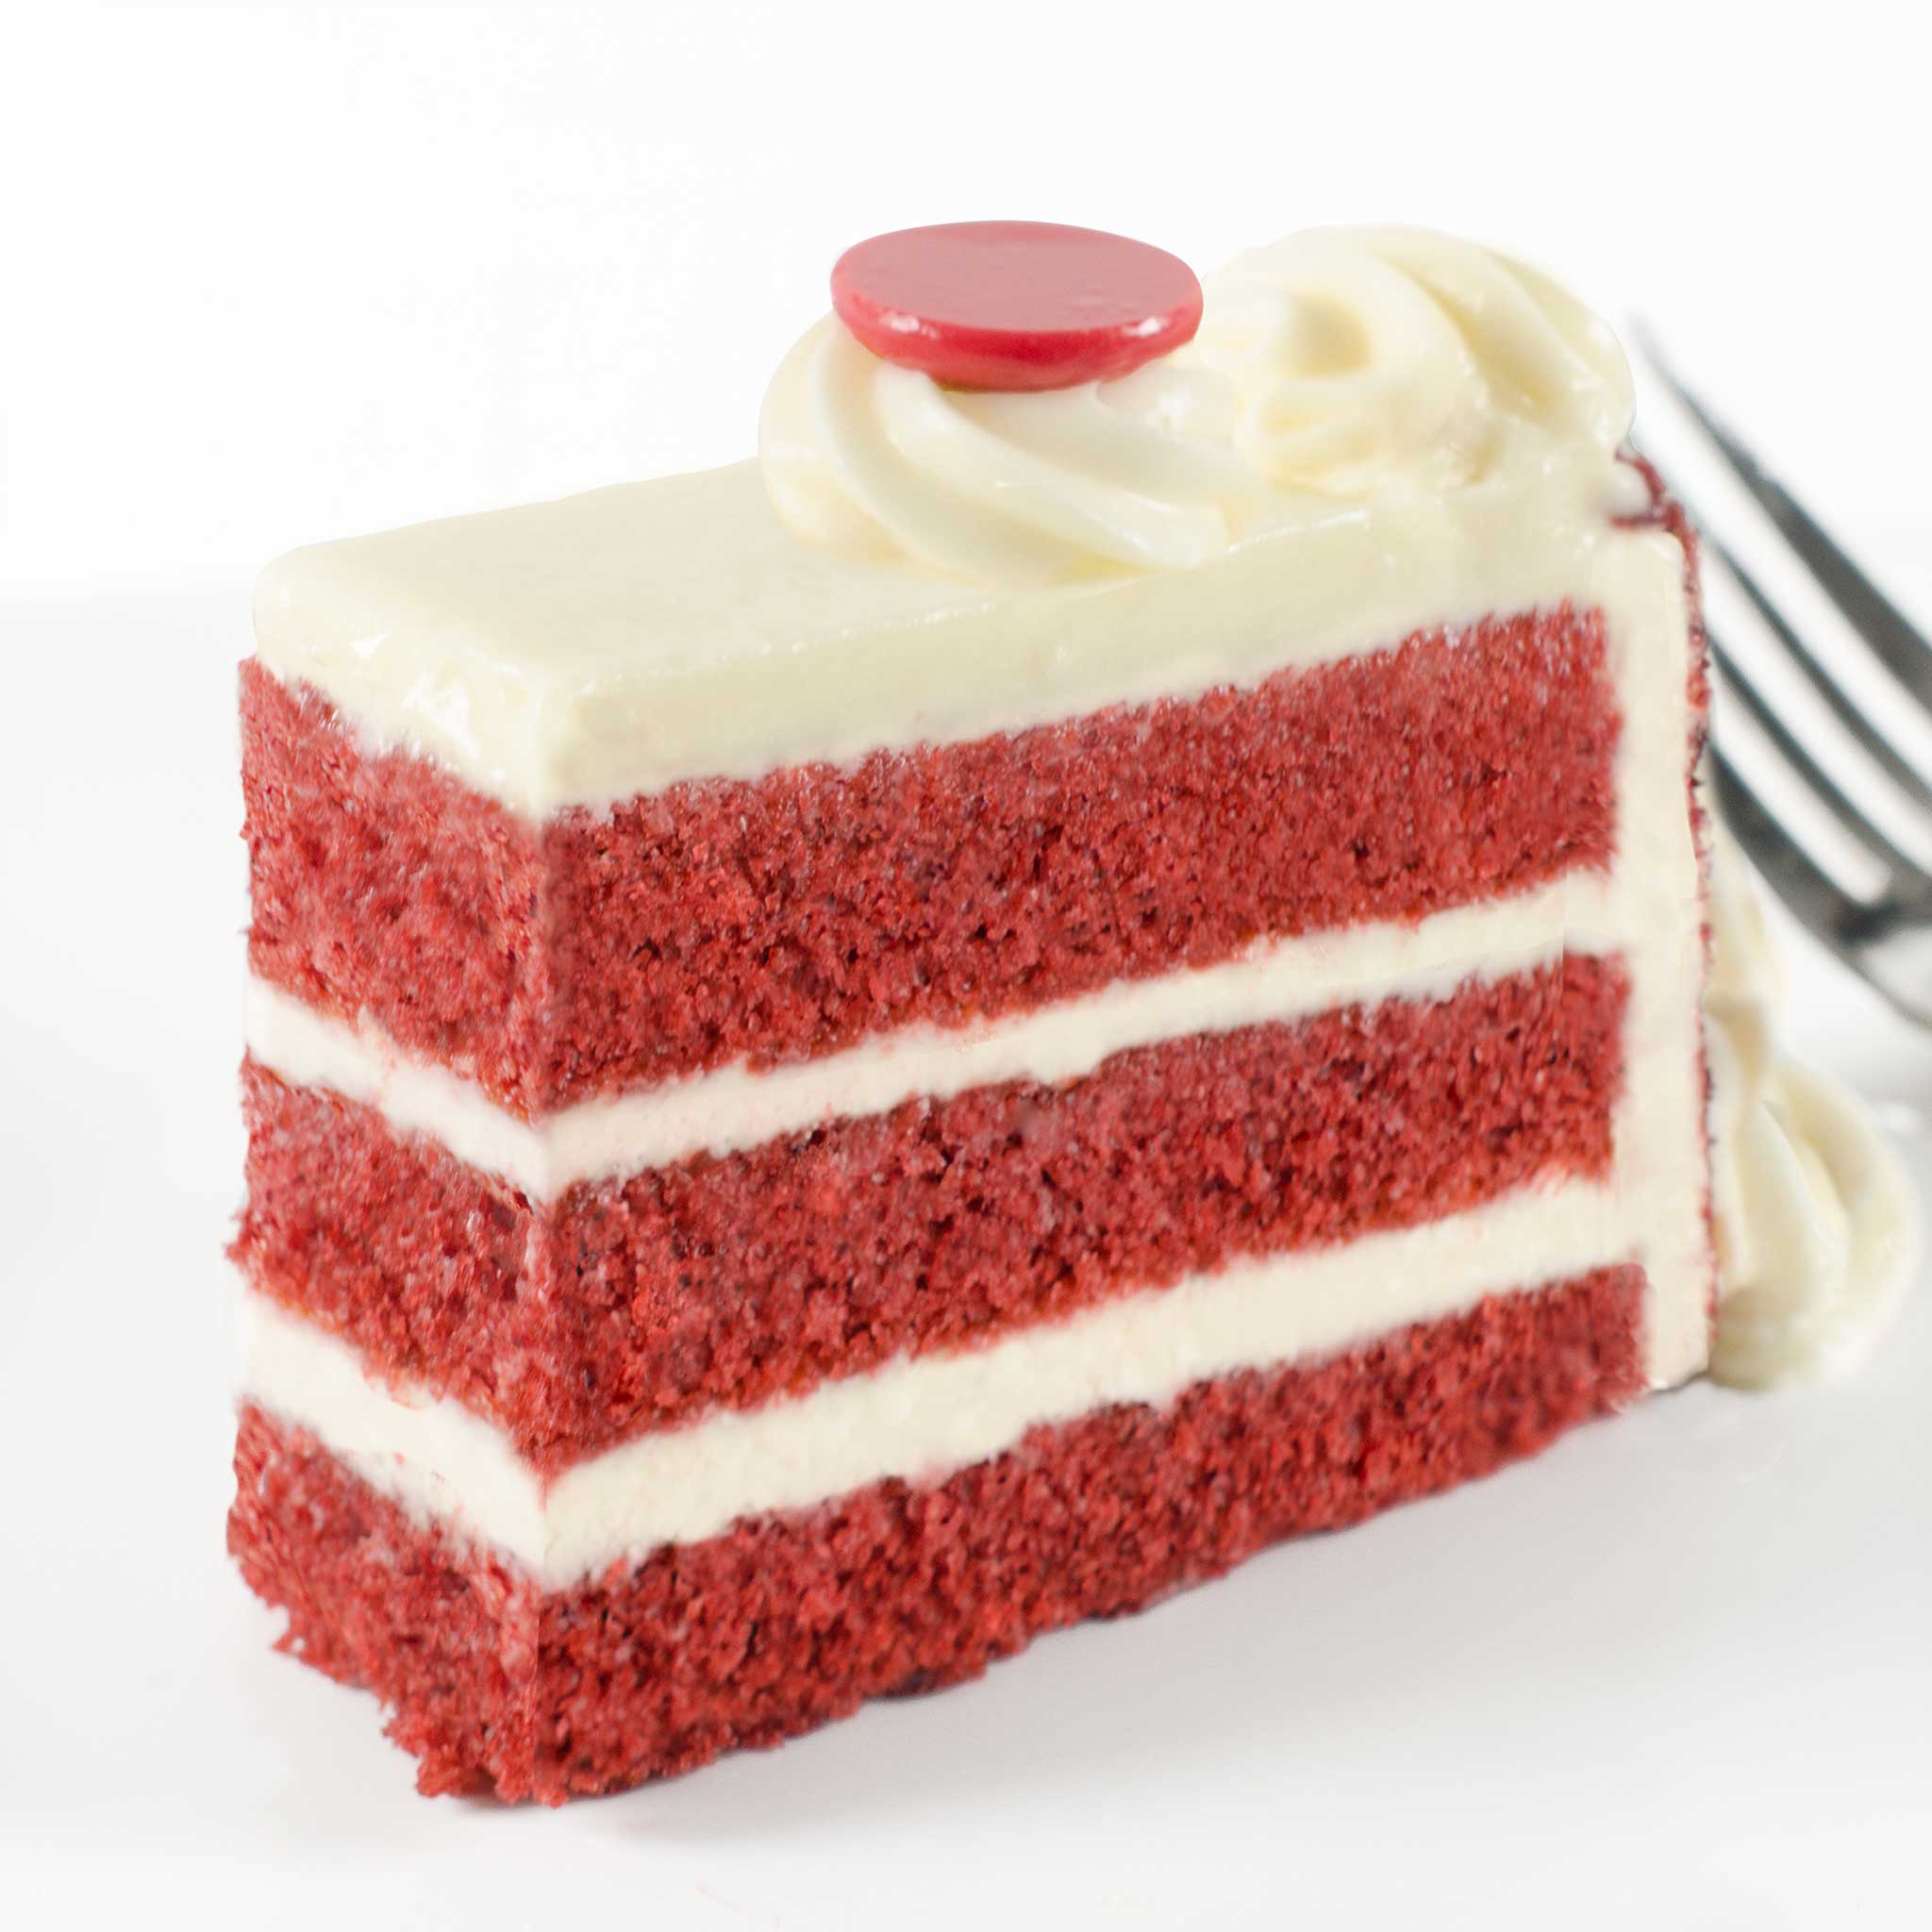 La Rocca Red Velvet Celebration Cake - Slice